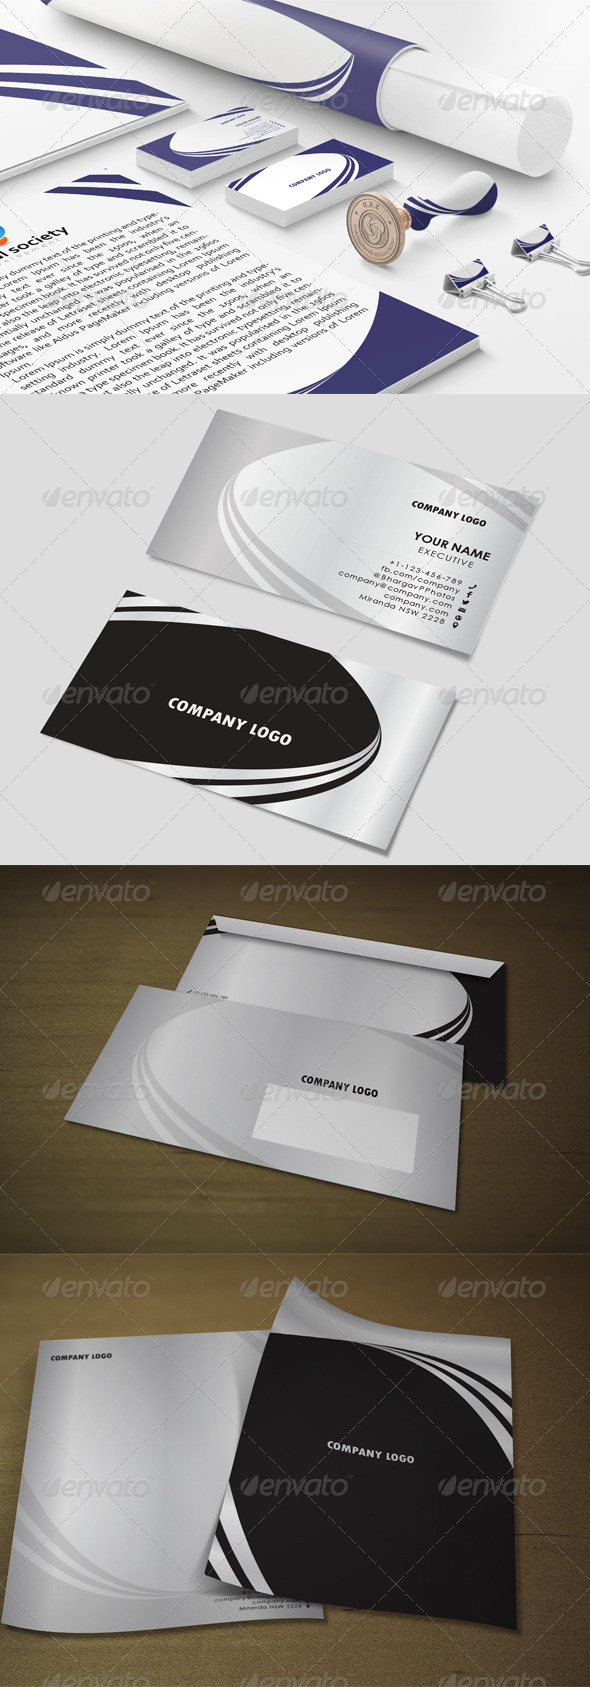 GraphicRiver Black & sliver 3line Stationary Templates 5476606